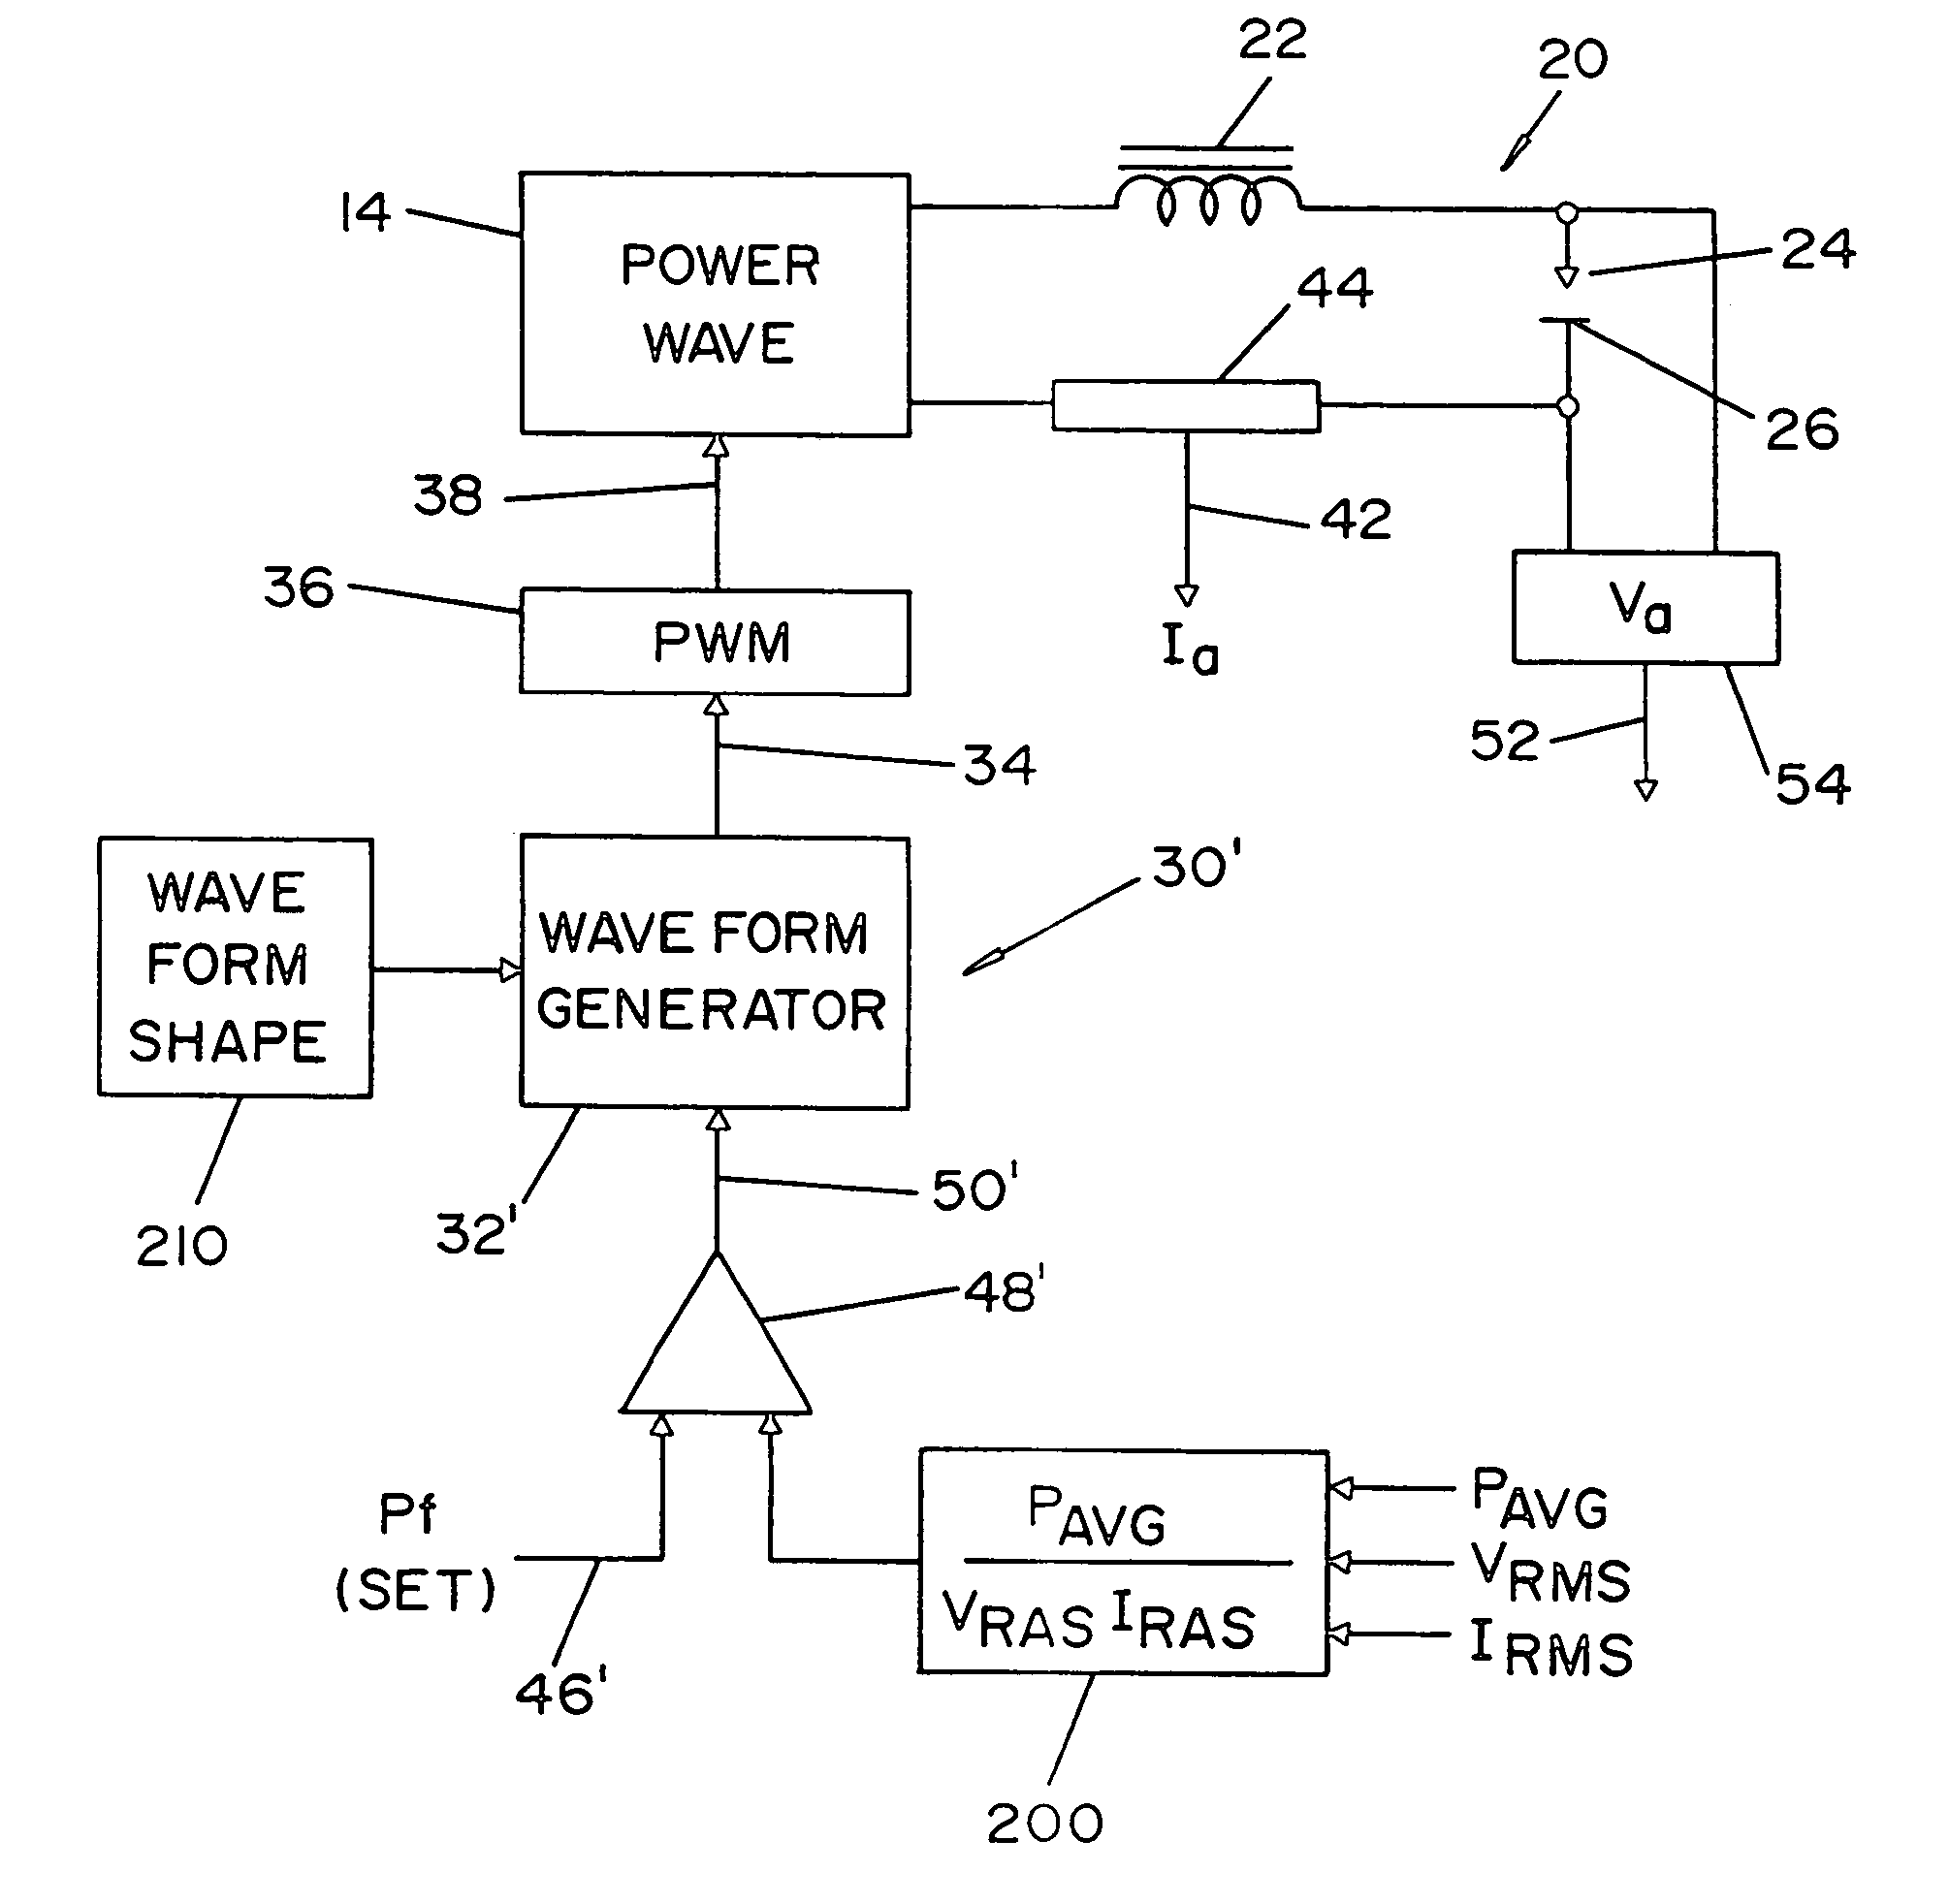 Patent Us7064290 Electric Arc Welder And Method For Controlling Welding Process Diagram Drawing